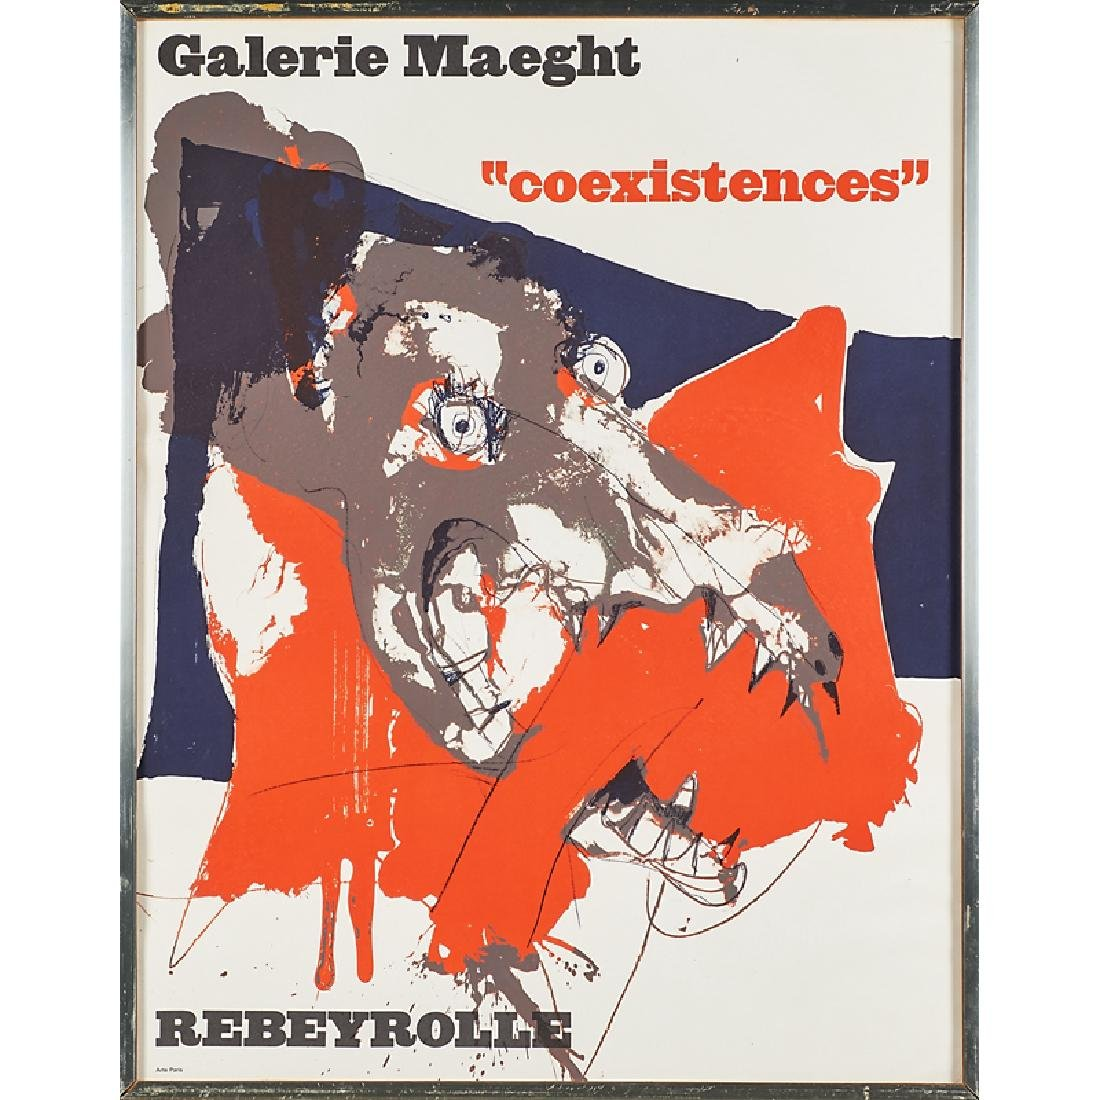 GALERIE MAEGHT EXHIBITION POSTERS - 5